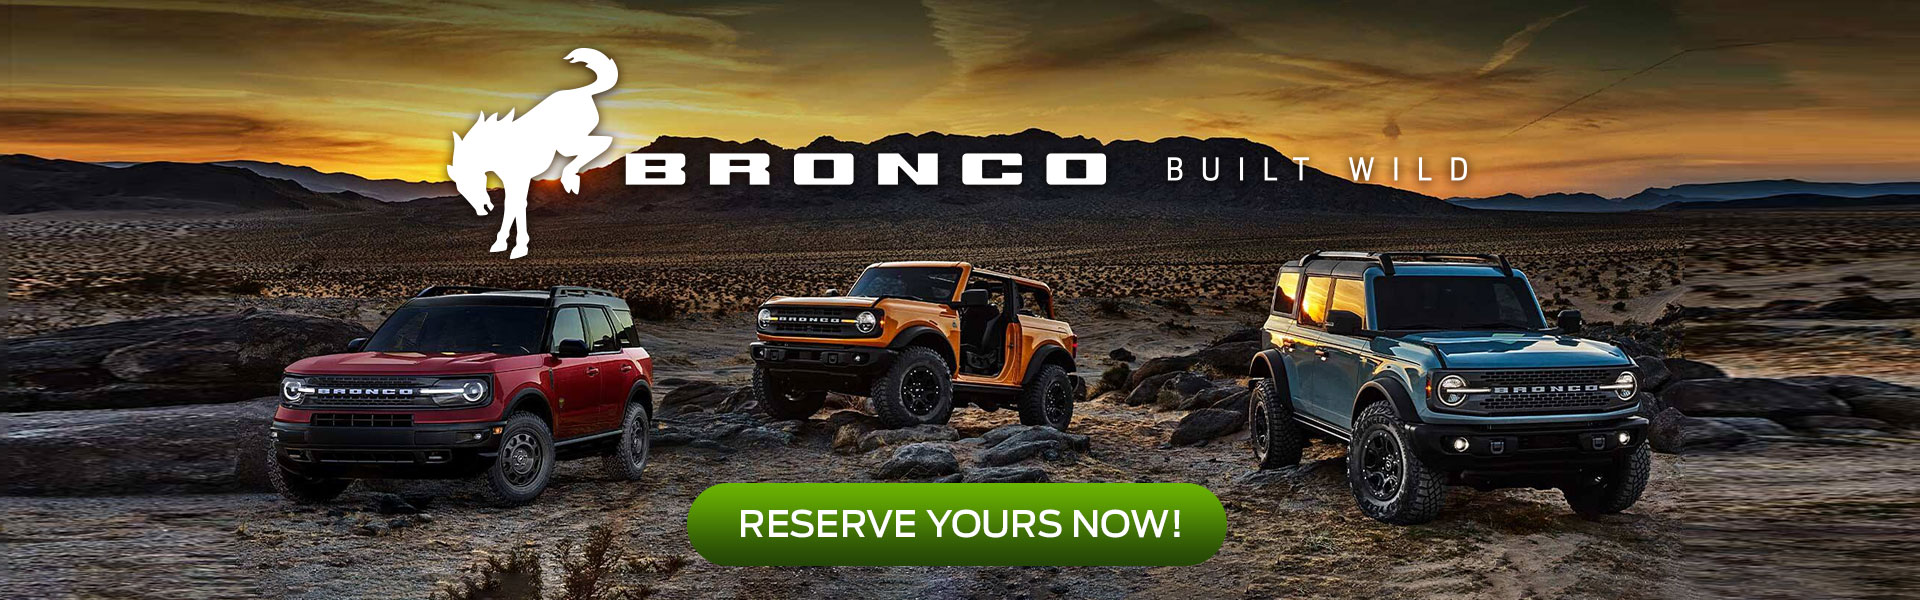 2021 Ford Bronco SUVs - BUILT WILD